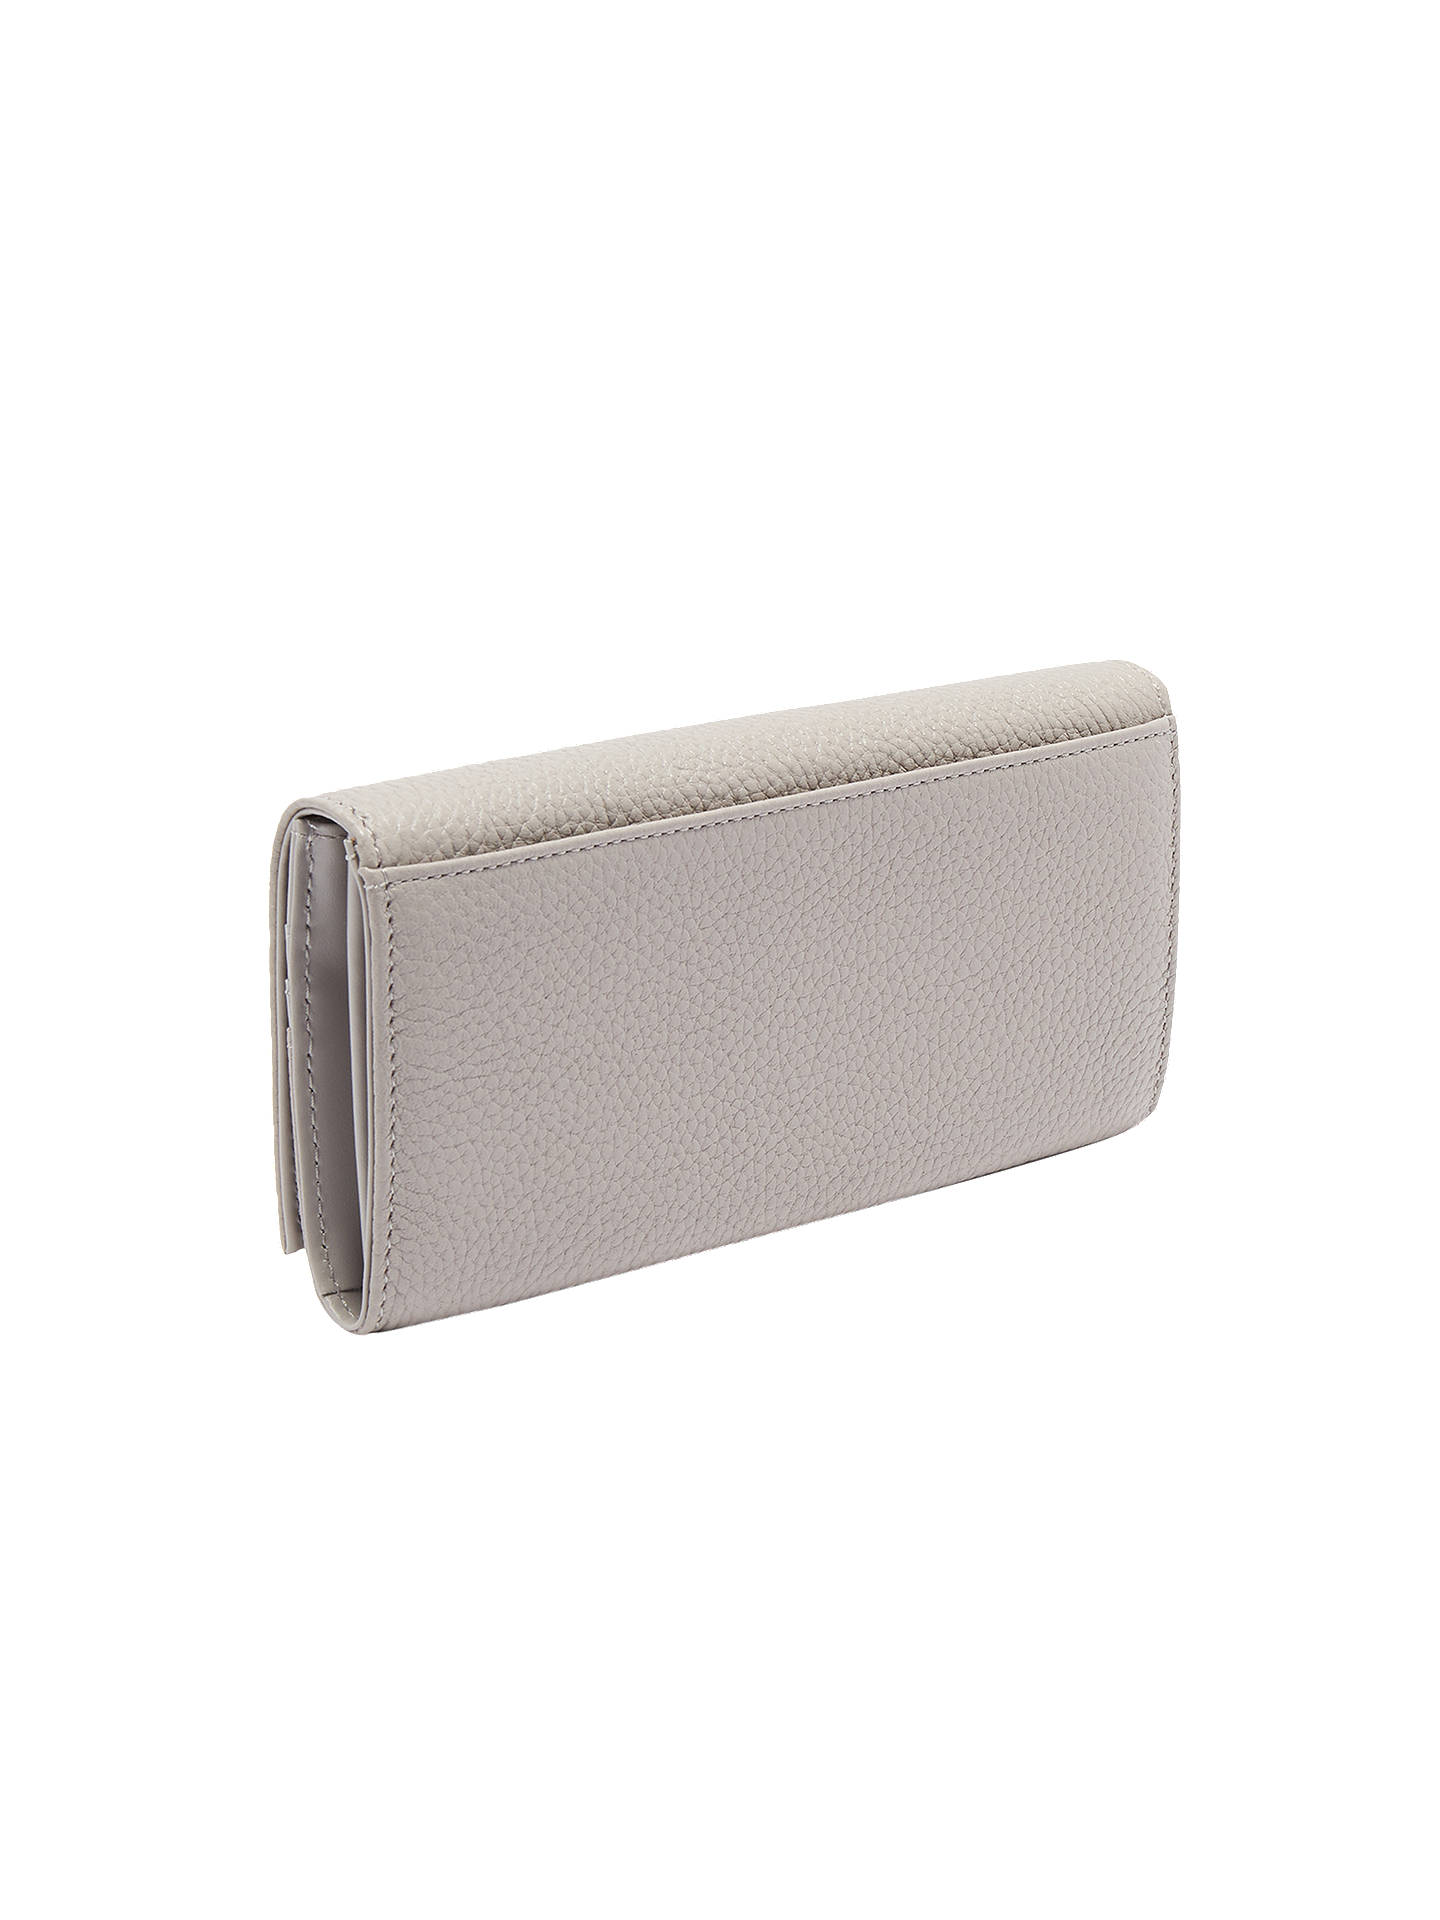 BuyTed Baker Ashling Twisted Bow Leather Purse, Charcoal Online at johnlewis.com